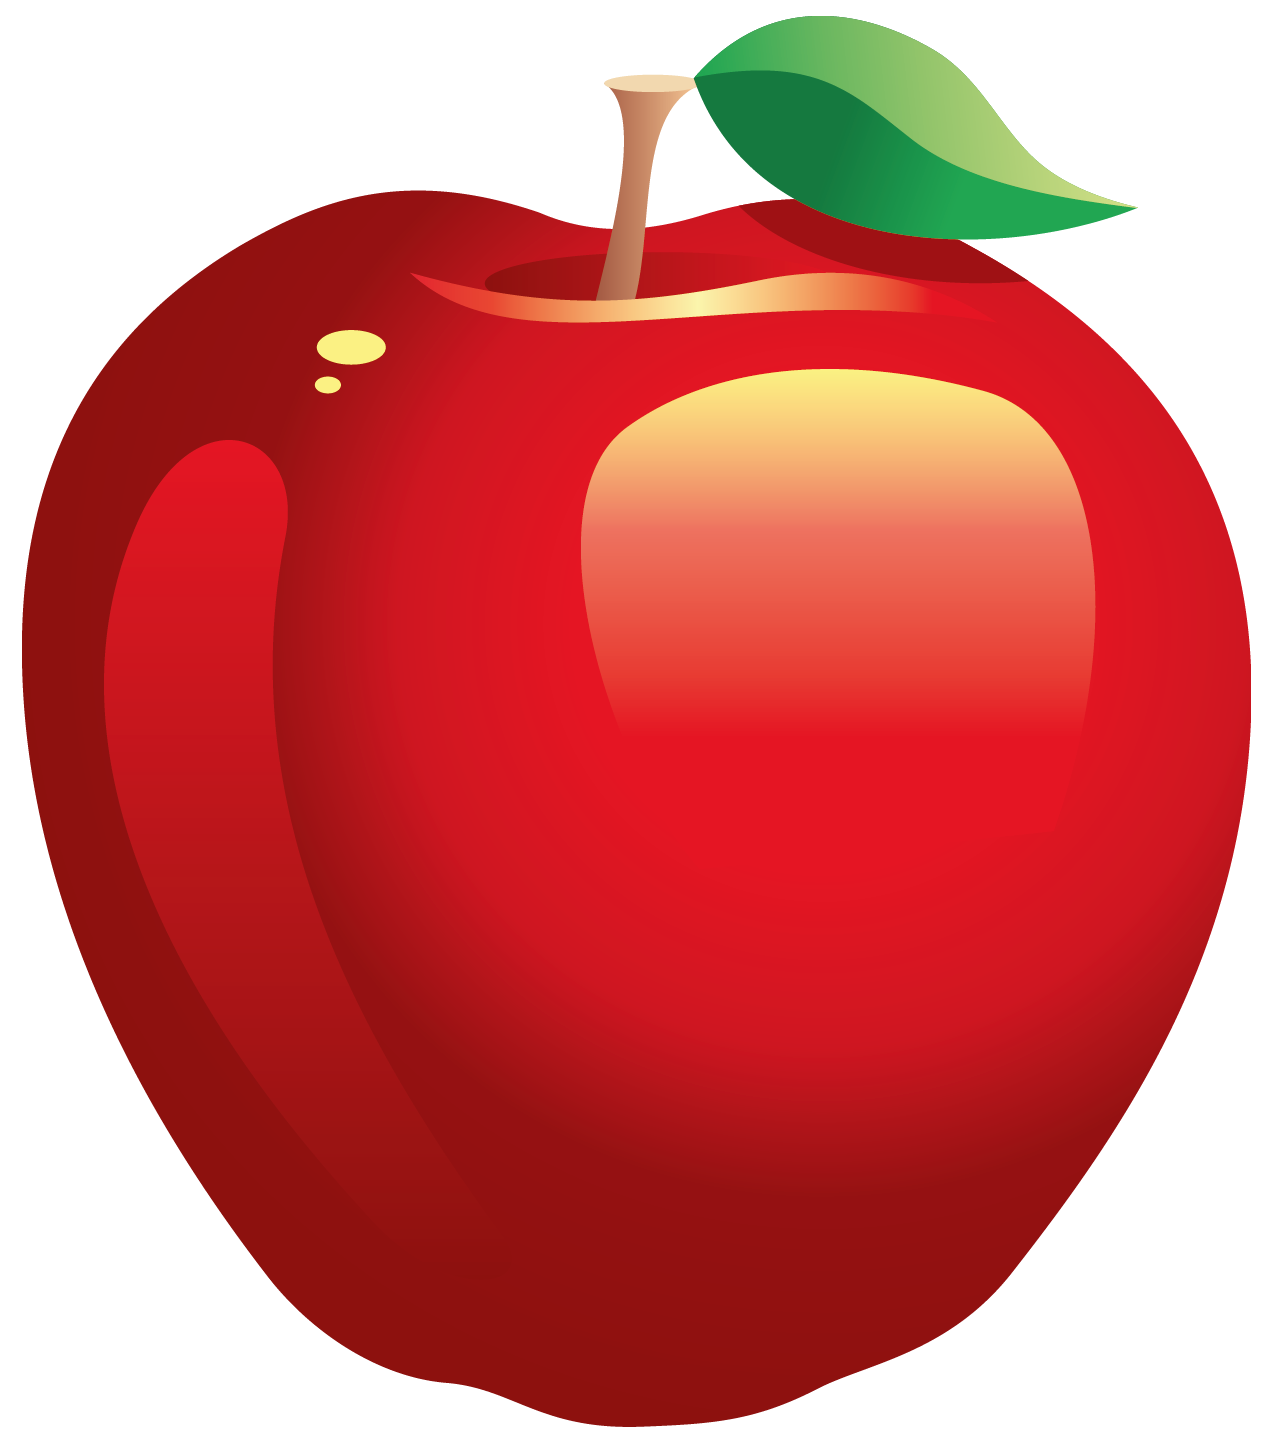 graphic royalty free Free clipart apples. Transparent apple cliparts download.